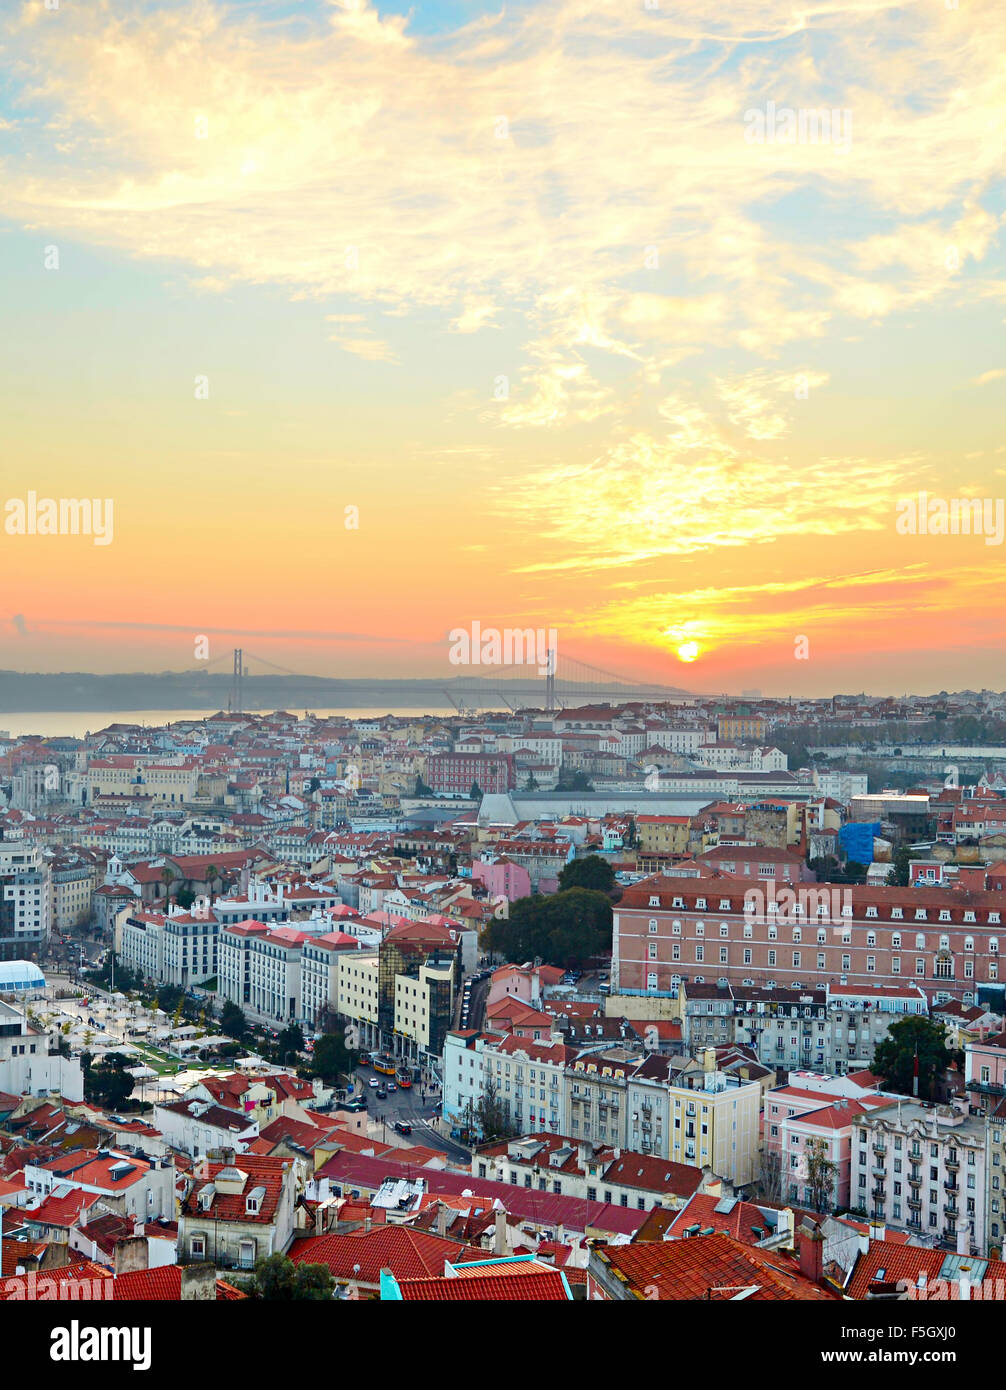 View of Lisbon city center and 25 April Bridge at sunset, Portugal - Stock Image